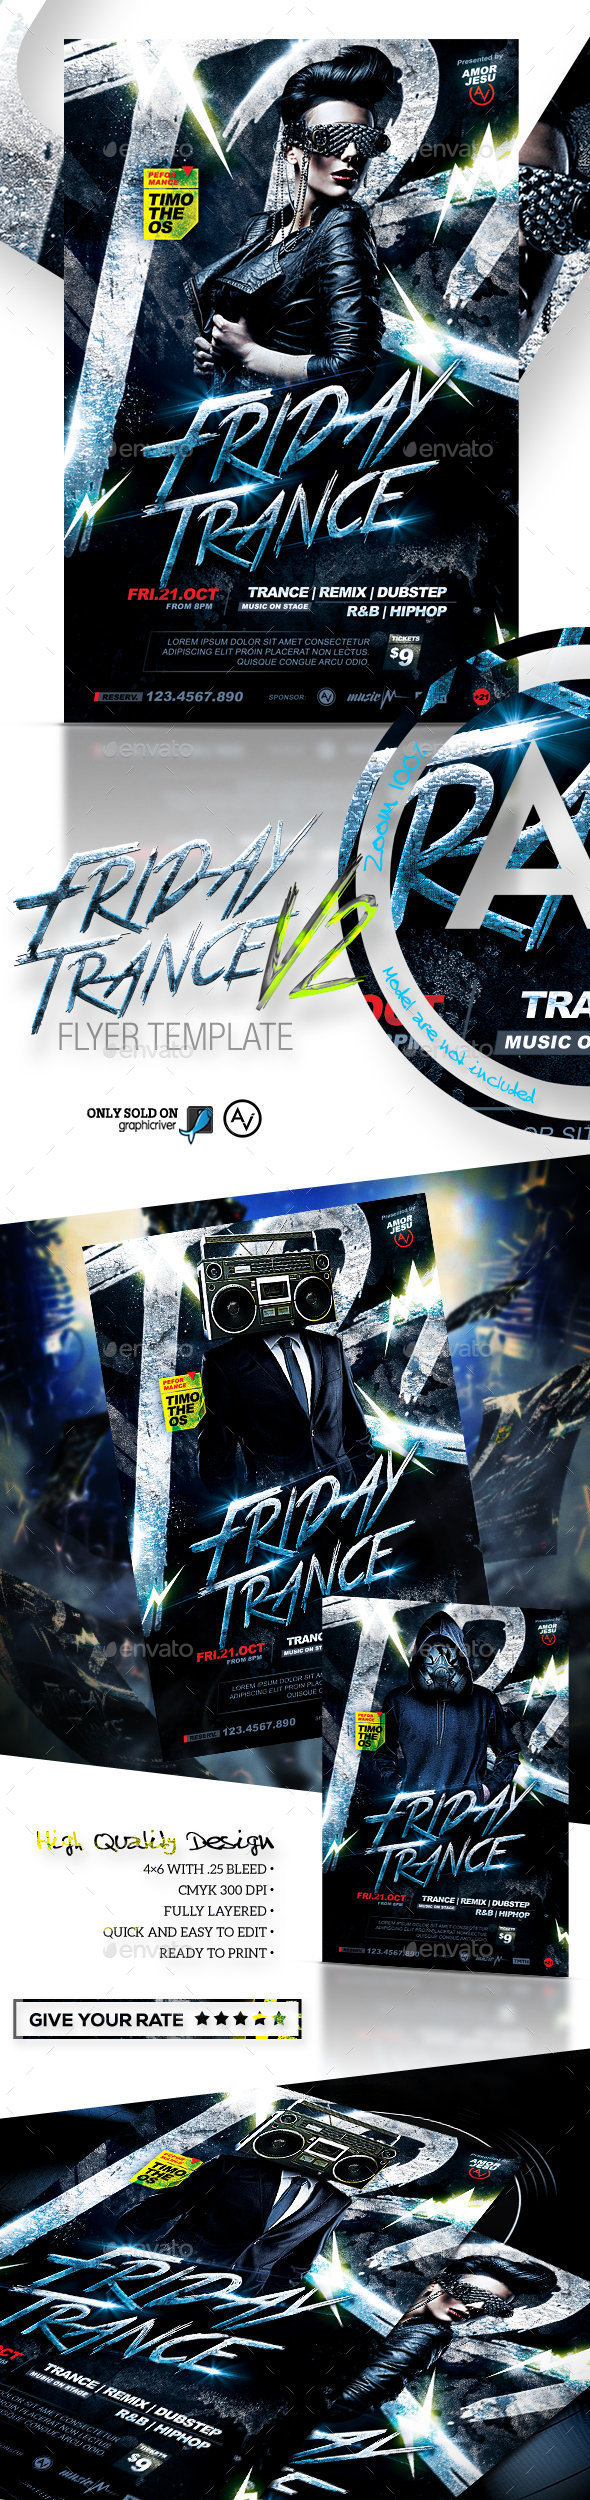 Friday Trance Flyer Template V2 - Clubs & Parties Events